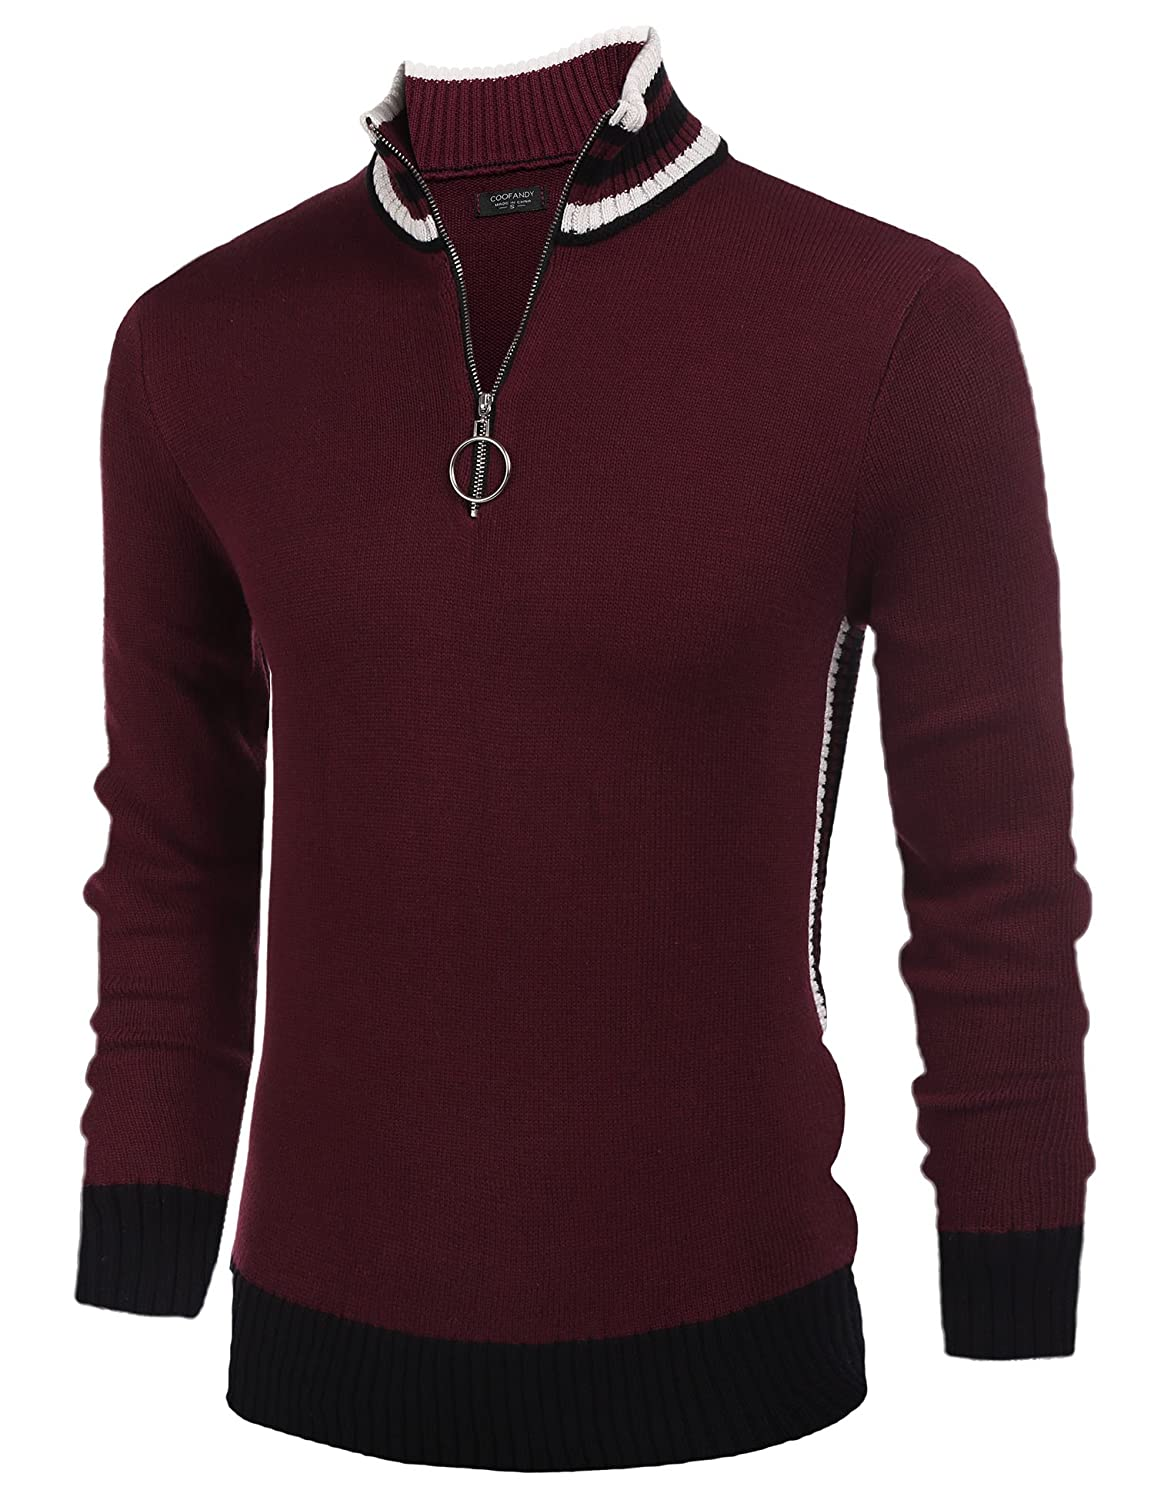 COOFANDY Men's Casual Quarter Zip Pullover Sweater Slim Fit Long Sleeve Polo Sweaters HM0818